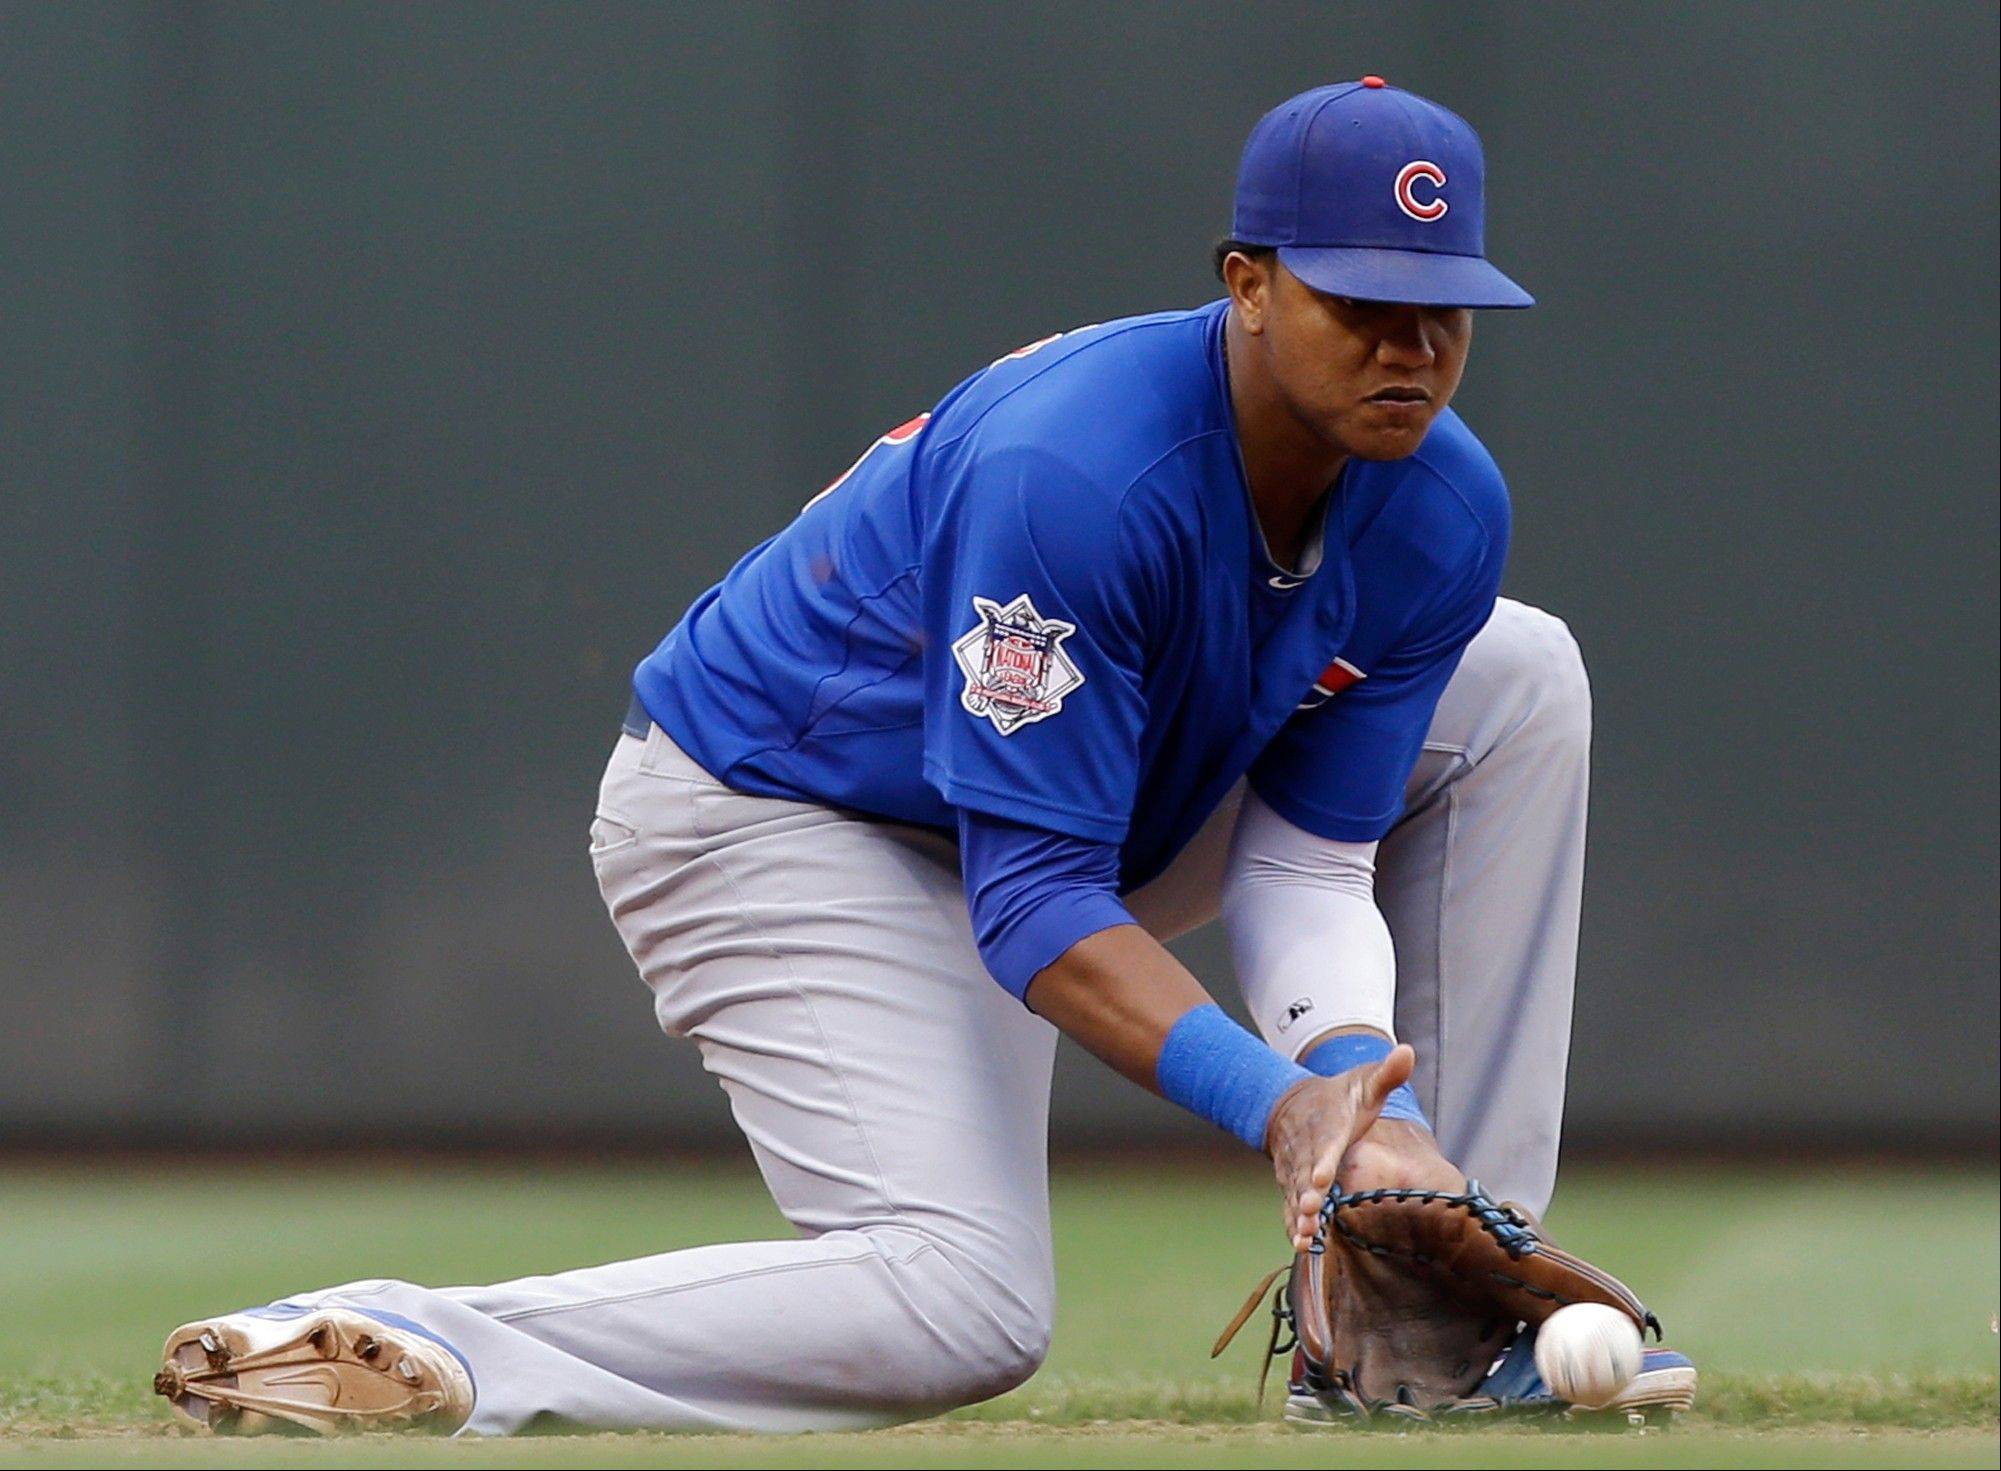 Shortstop Starlin Castro and the Cubs take on the White Sox on Monday night in the first of four straight games between the cross-town rivals.